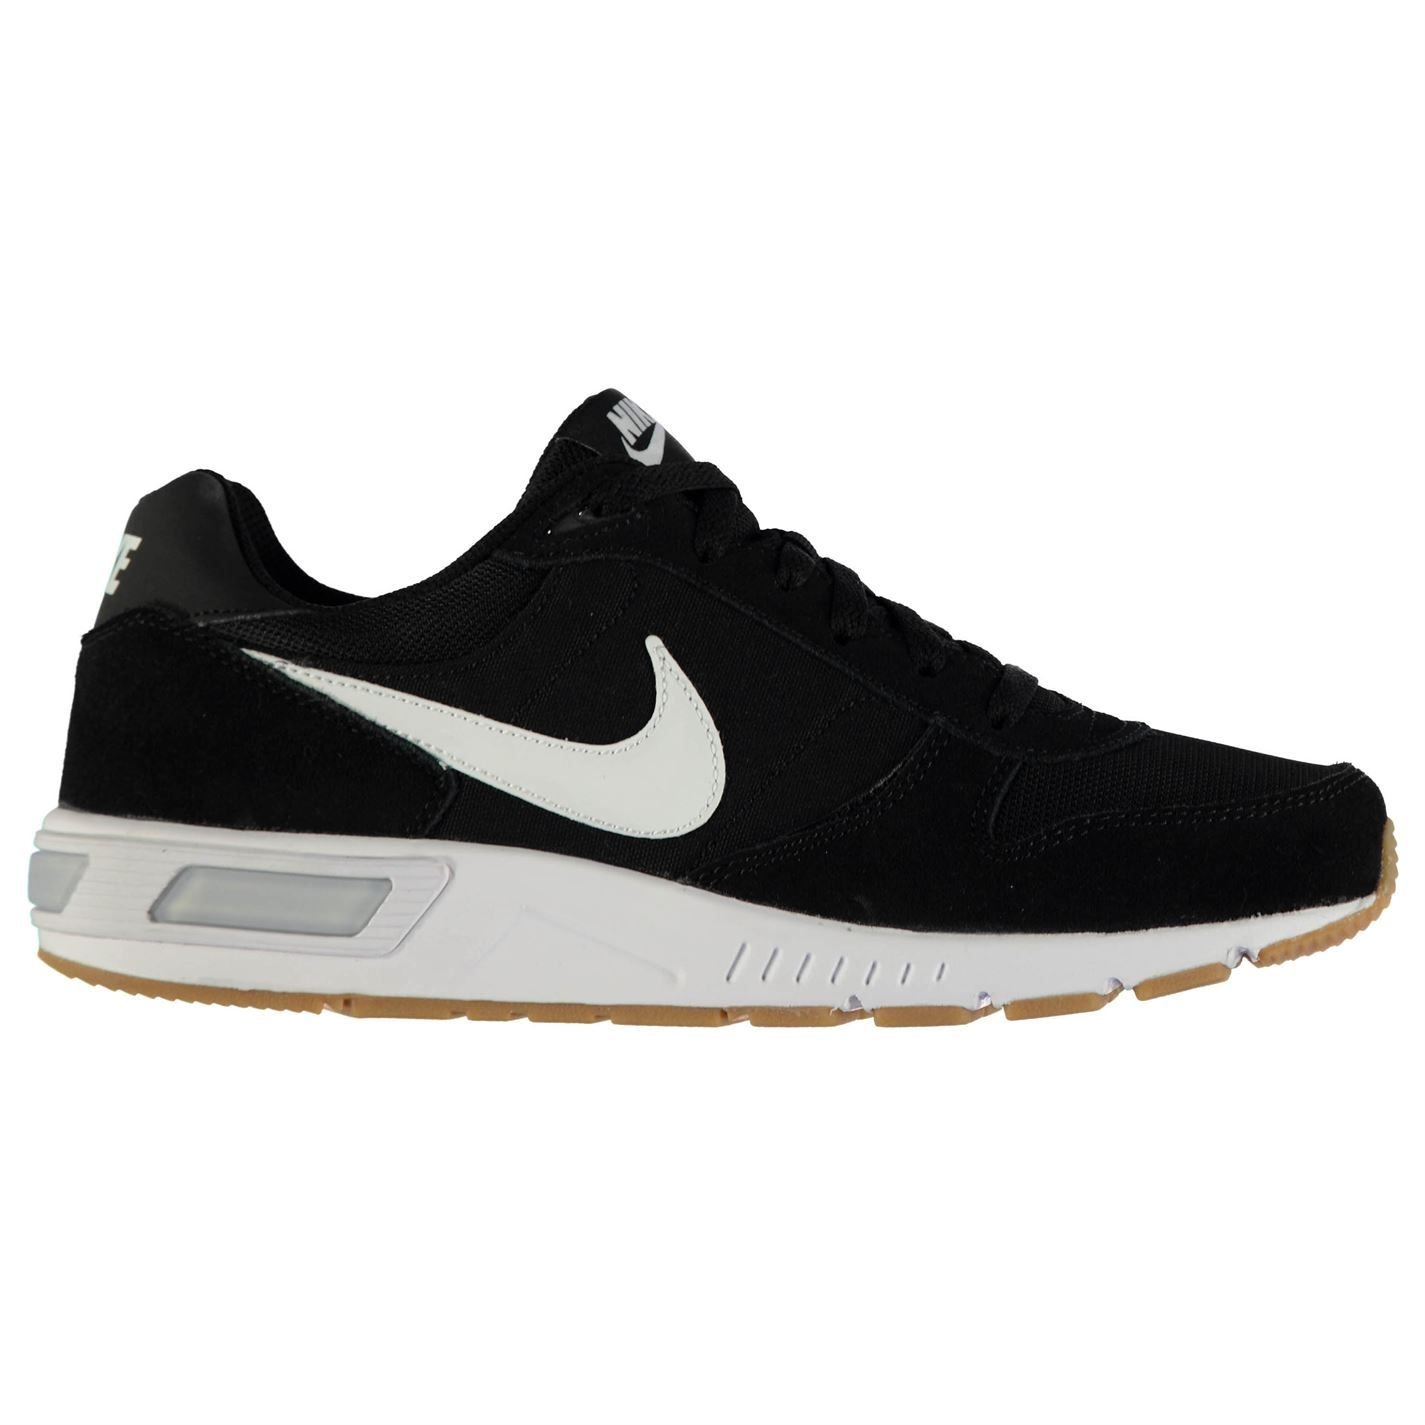 official photos 30eff 44eaf Nightgazer Low Top Trainers Mens